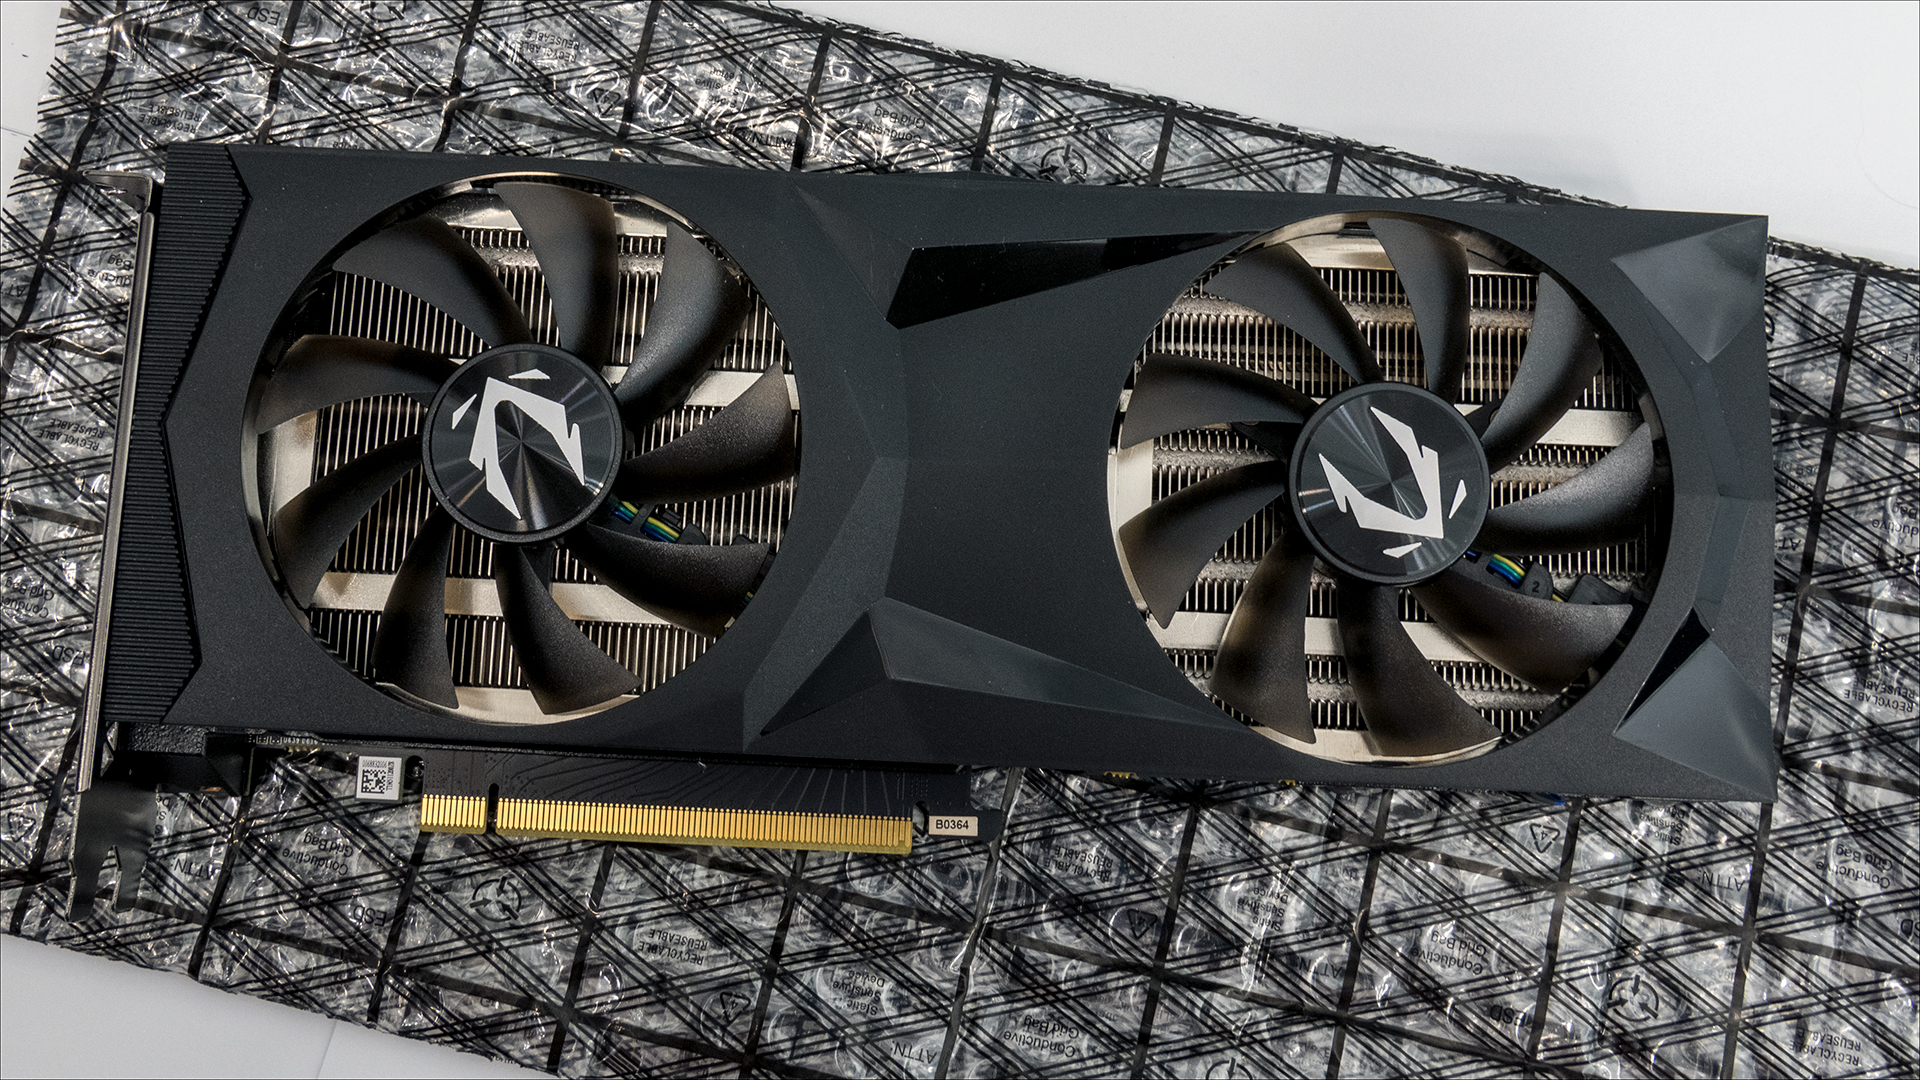 Zotac Gaming GeForce RTX 2070 AMP: Smaller design, but